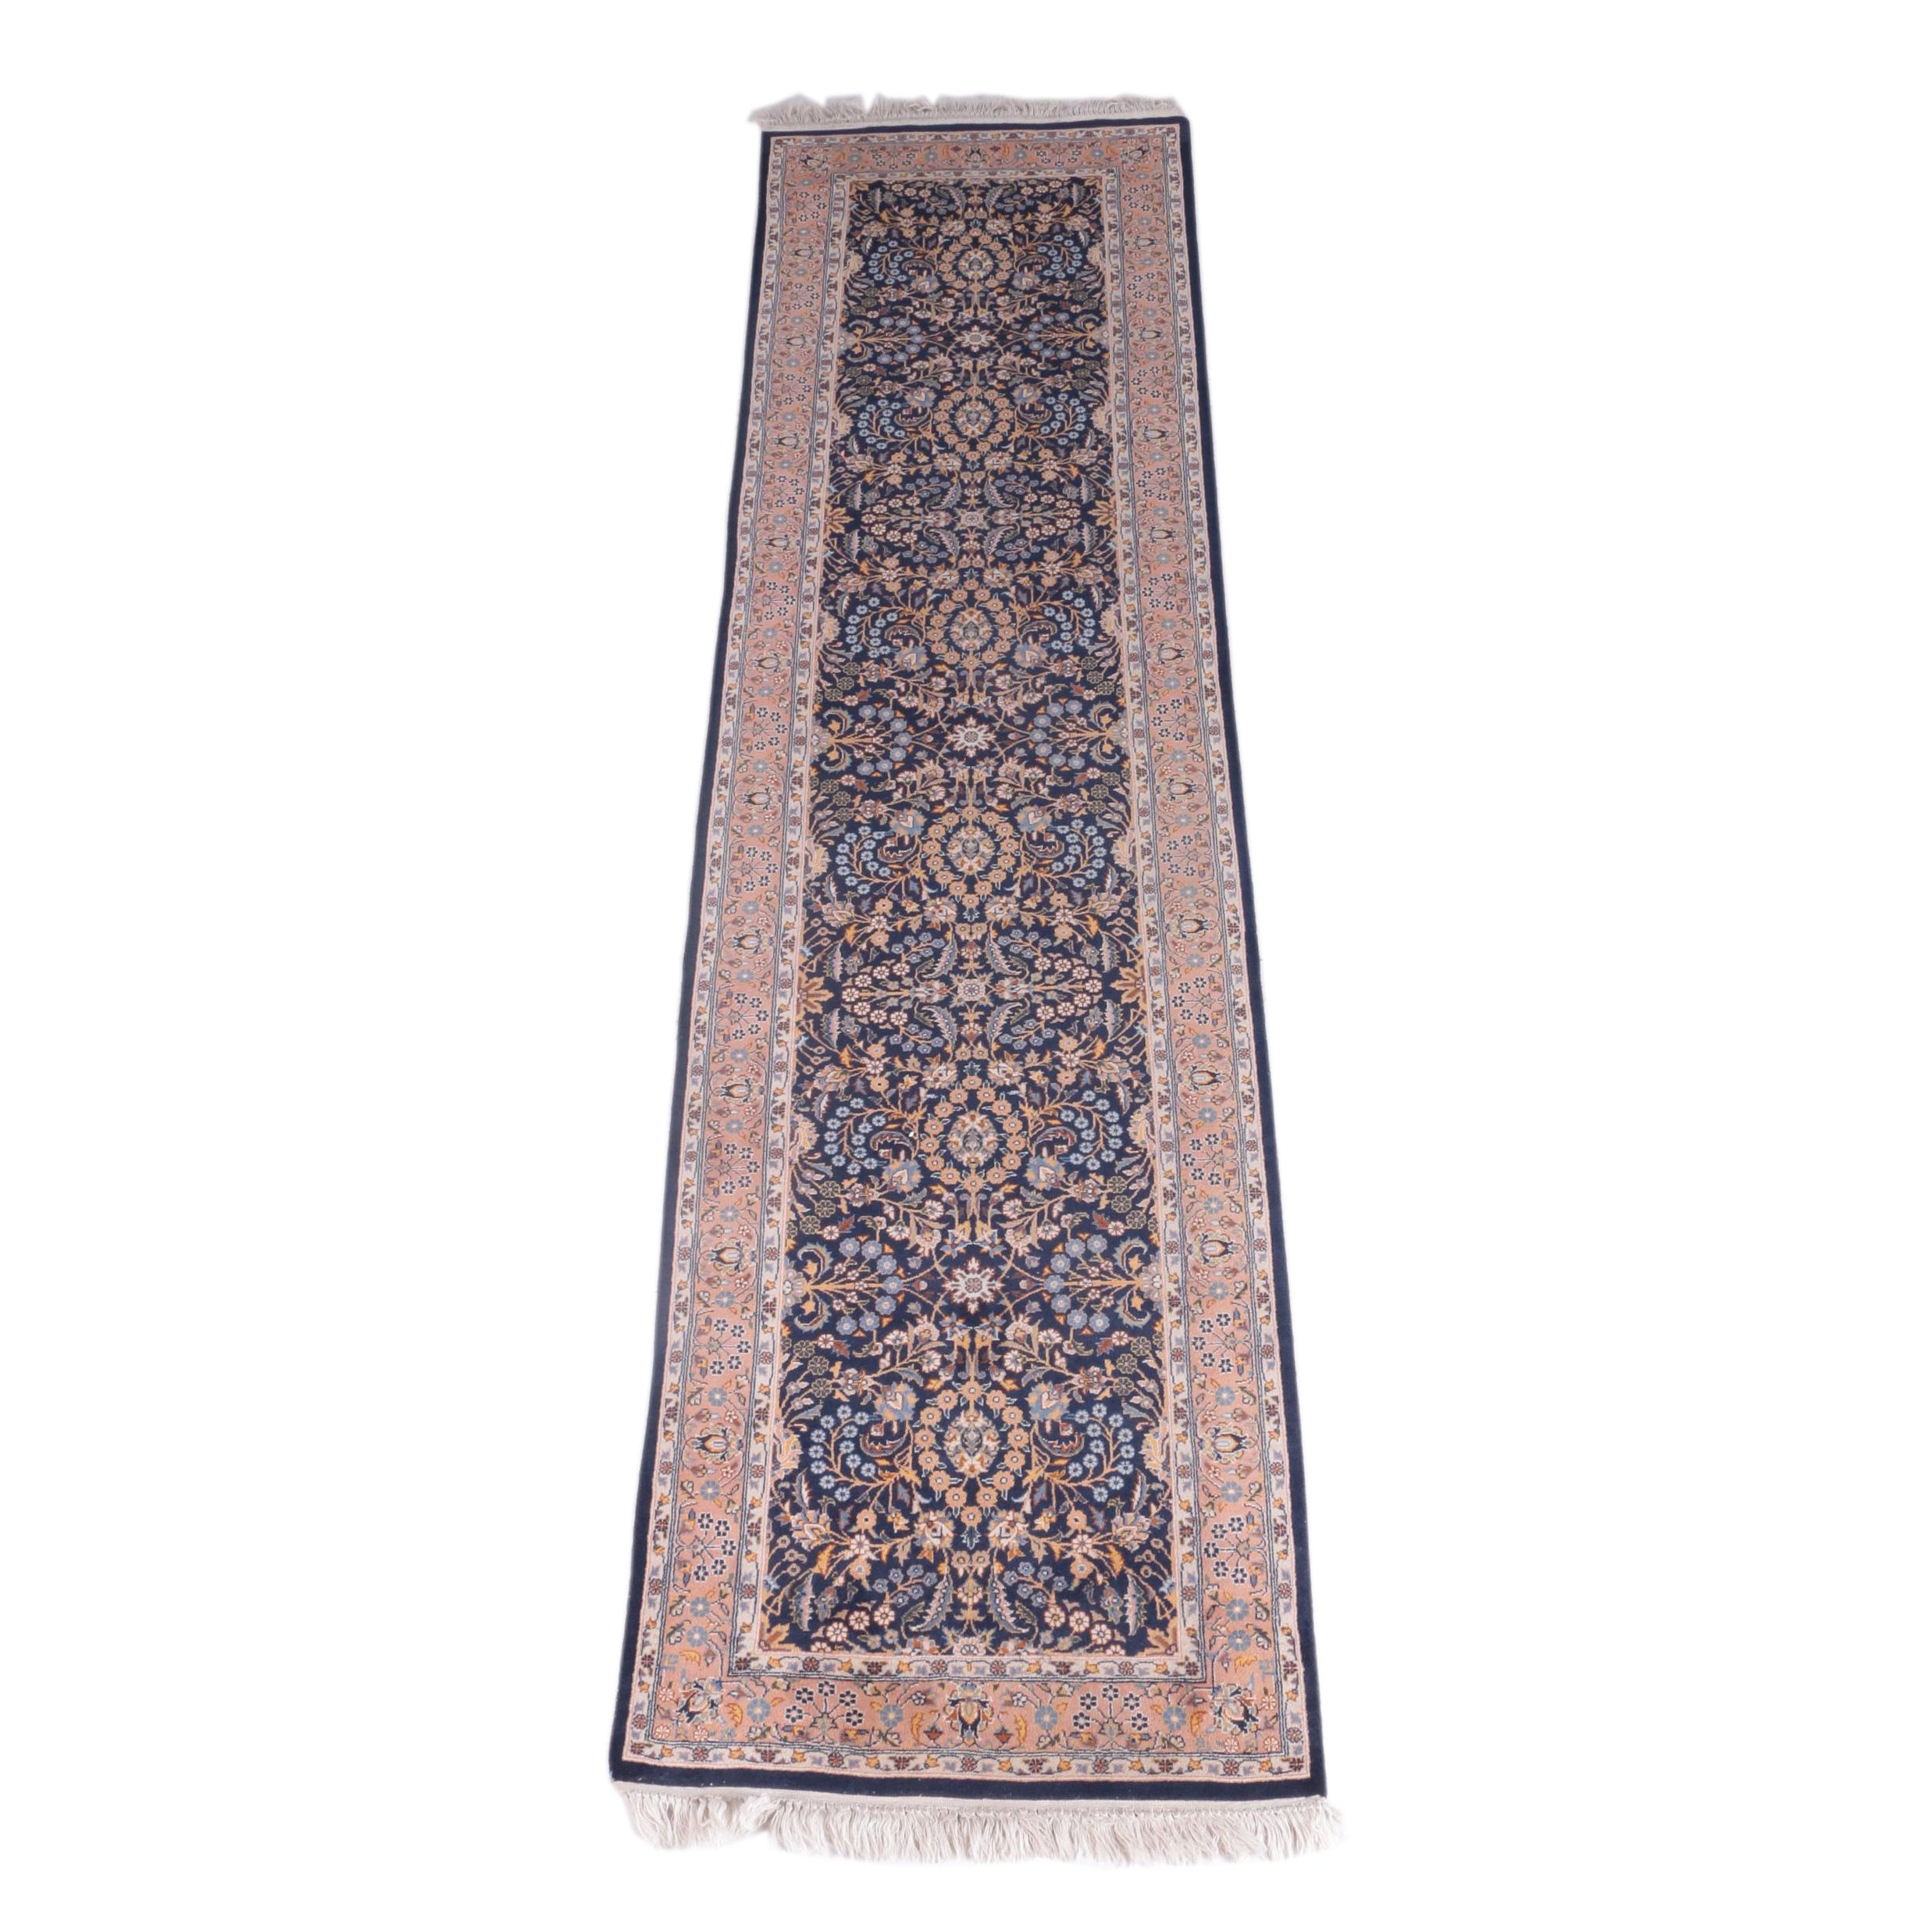 Hand-Knotted Persian Kashan Style Wool Carpet Runner